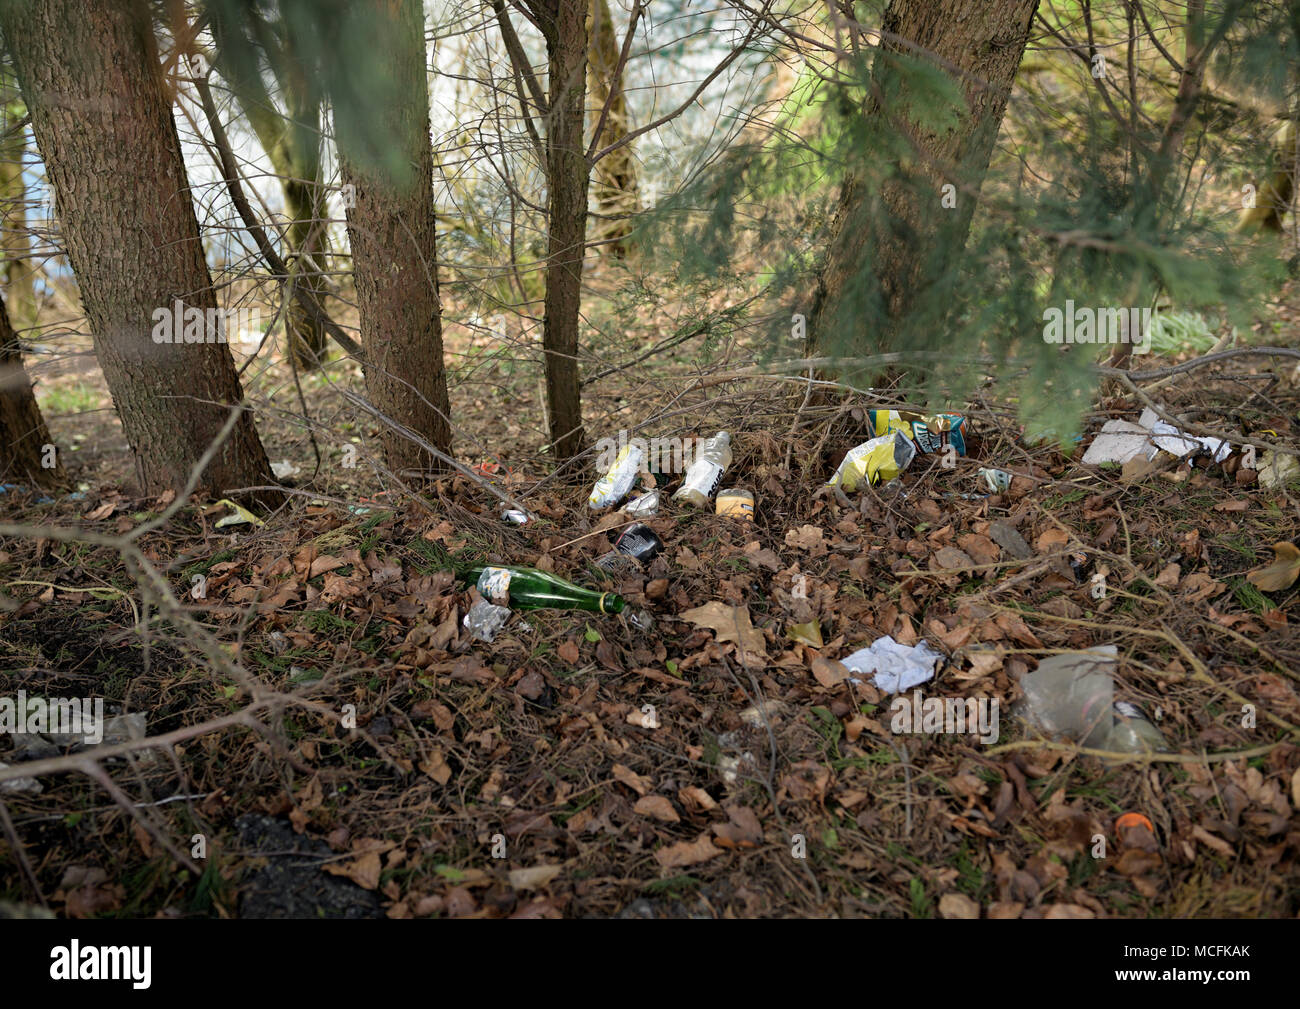 Plastic bags and plastic bottles and rubbish thrown away and dumped in woodland in bury lancashire - Stock Image